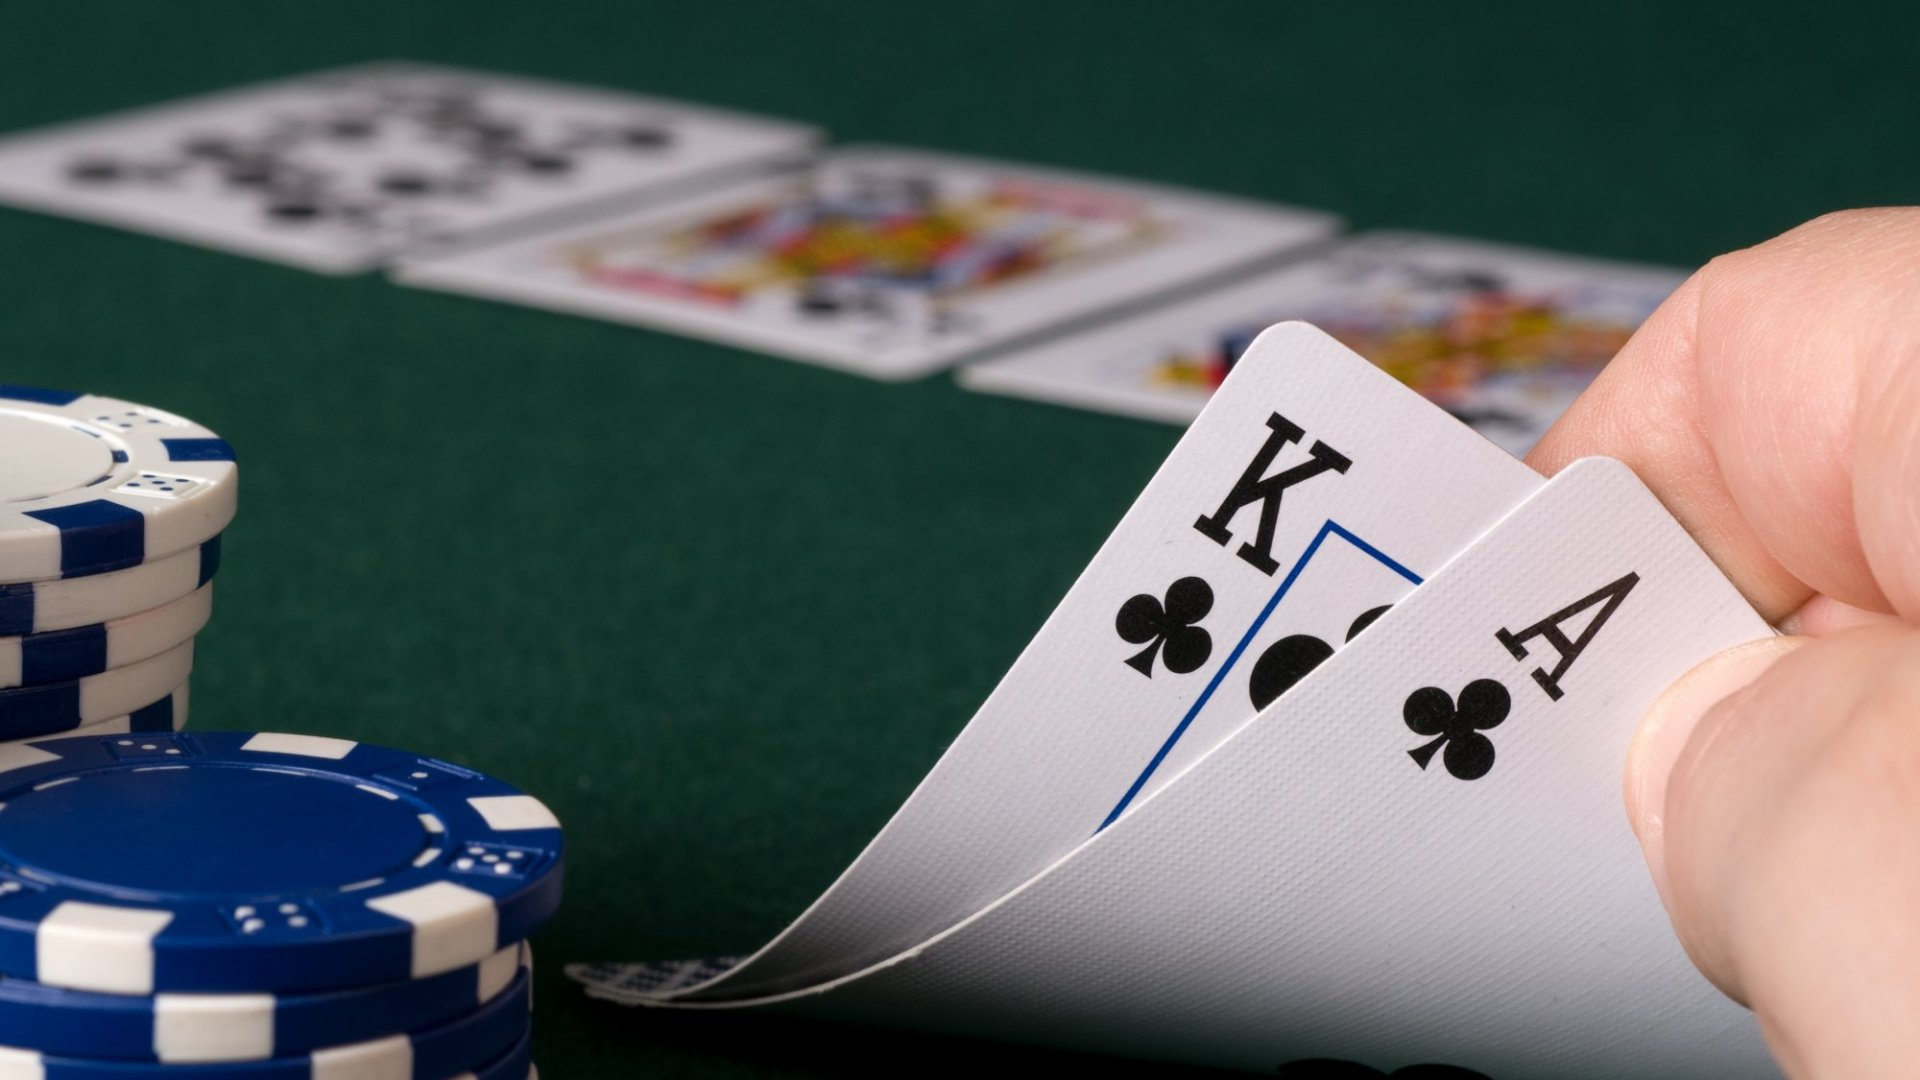 What Texas Hold 'Em Can Teach You About Influencing Customers